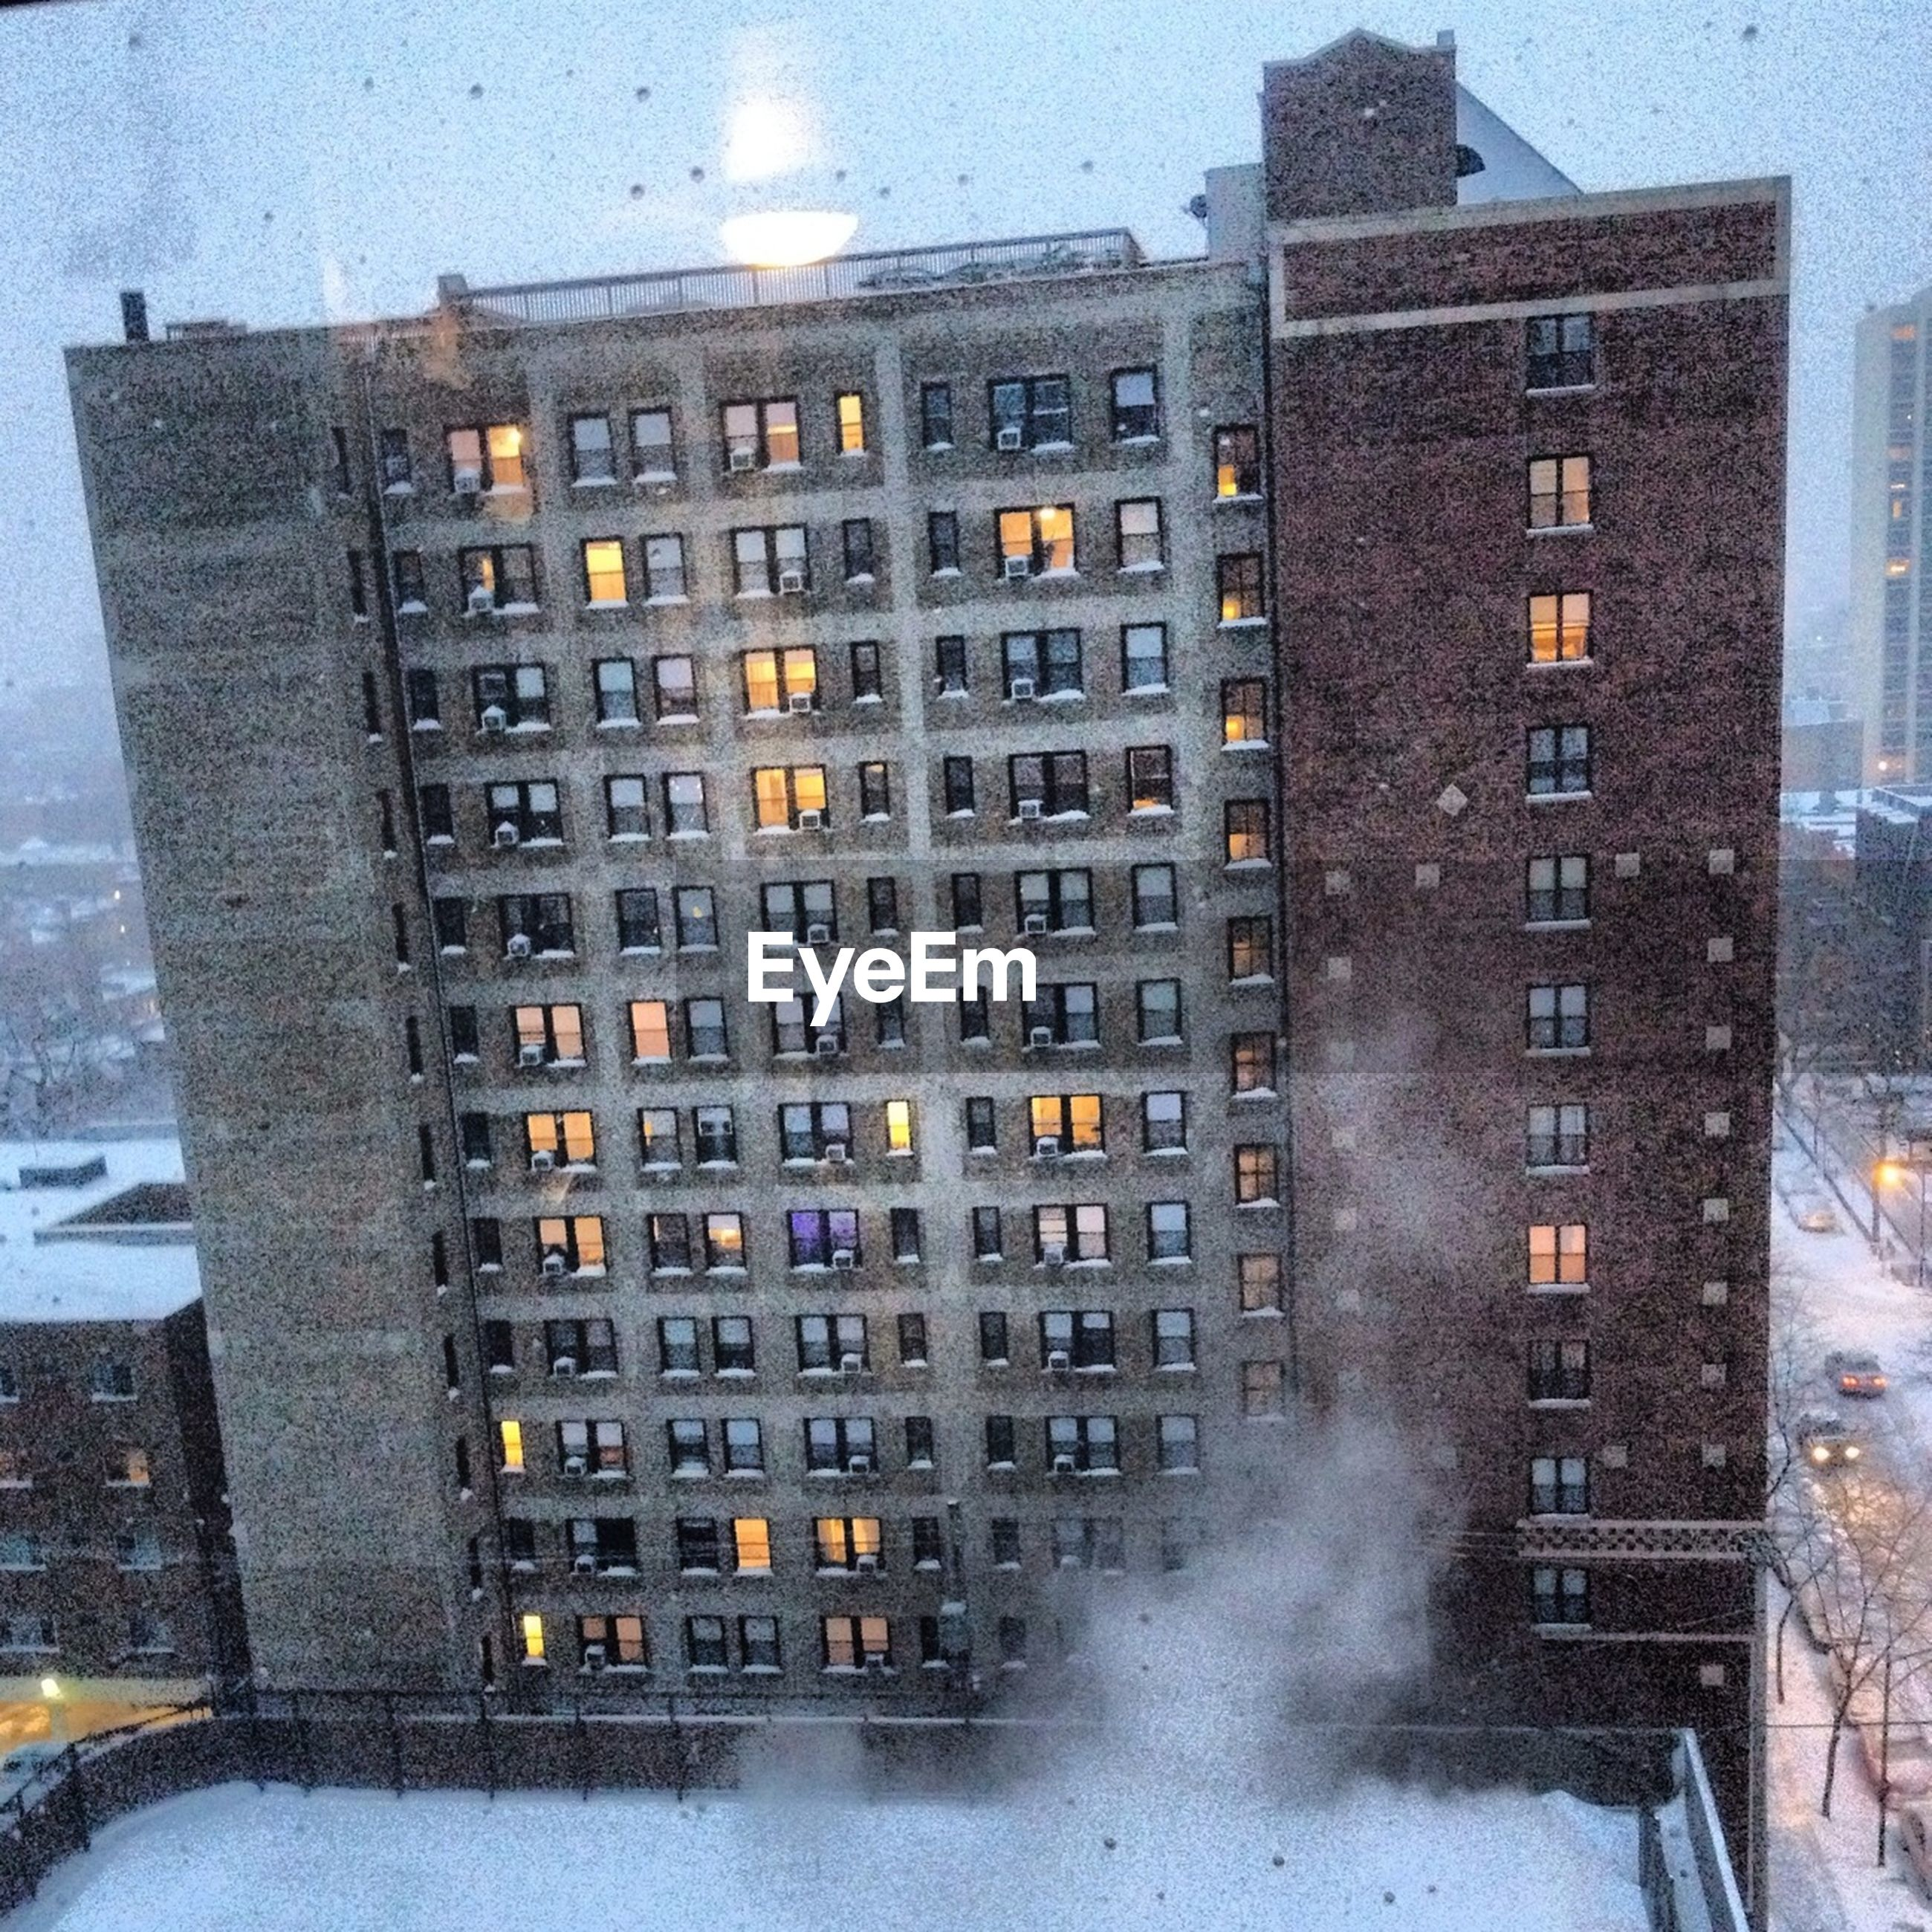 building exterior, architecture, built structure, city, building, window, glass - material, season, residential building, reflection, street, residential structure, day, outdoors, no people, weather, wet, high angle view, modern, cold temperature